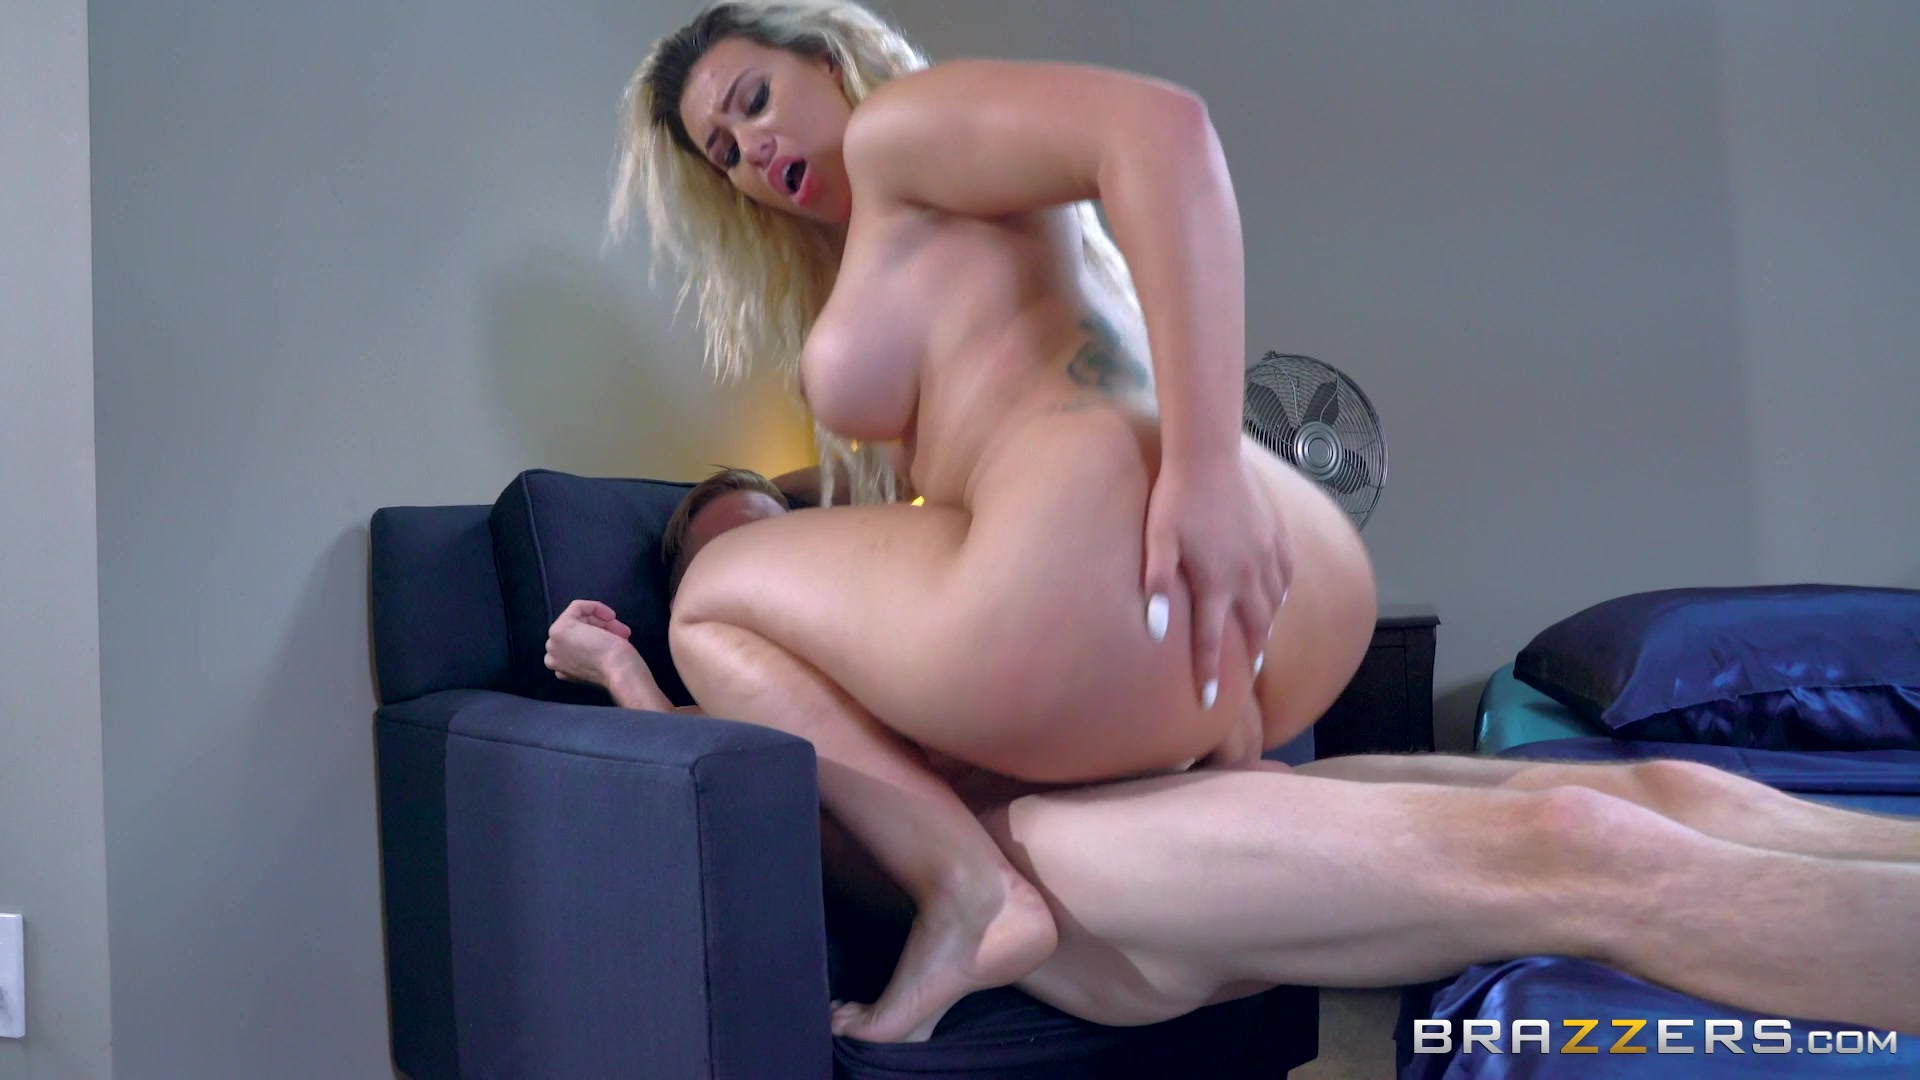 Free big butt slut videos and have